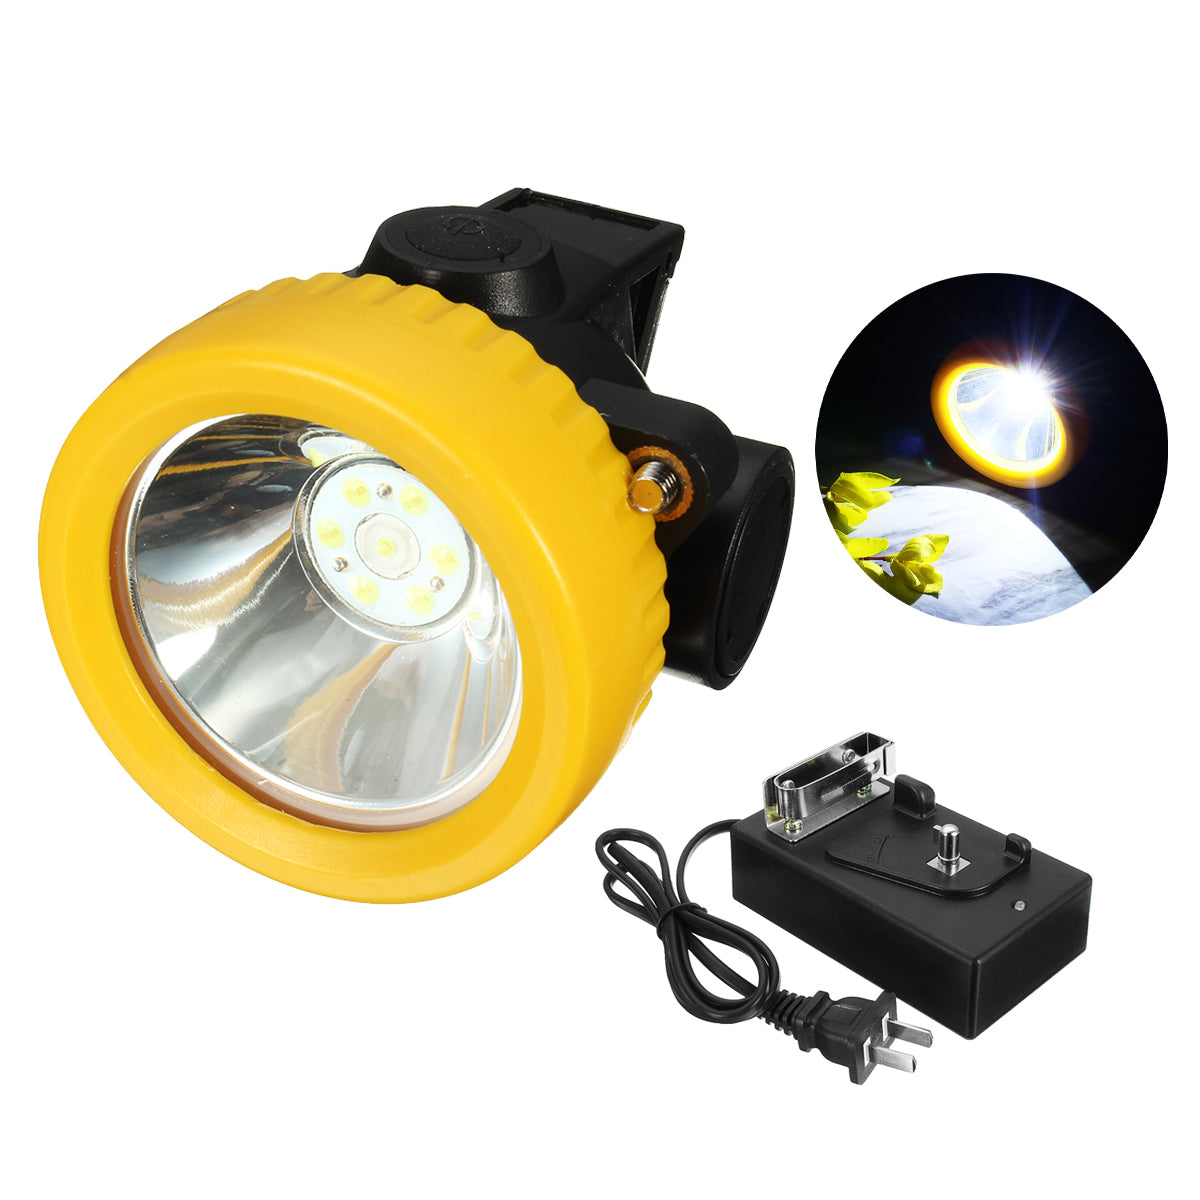 Miners Cordless Power LED Helmet Light Safety Head Cap Lamp Torch